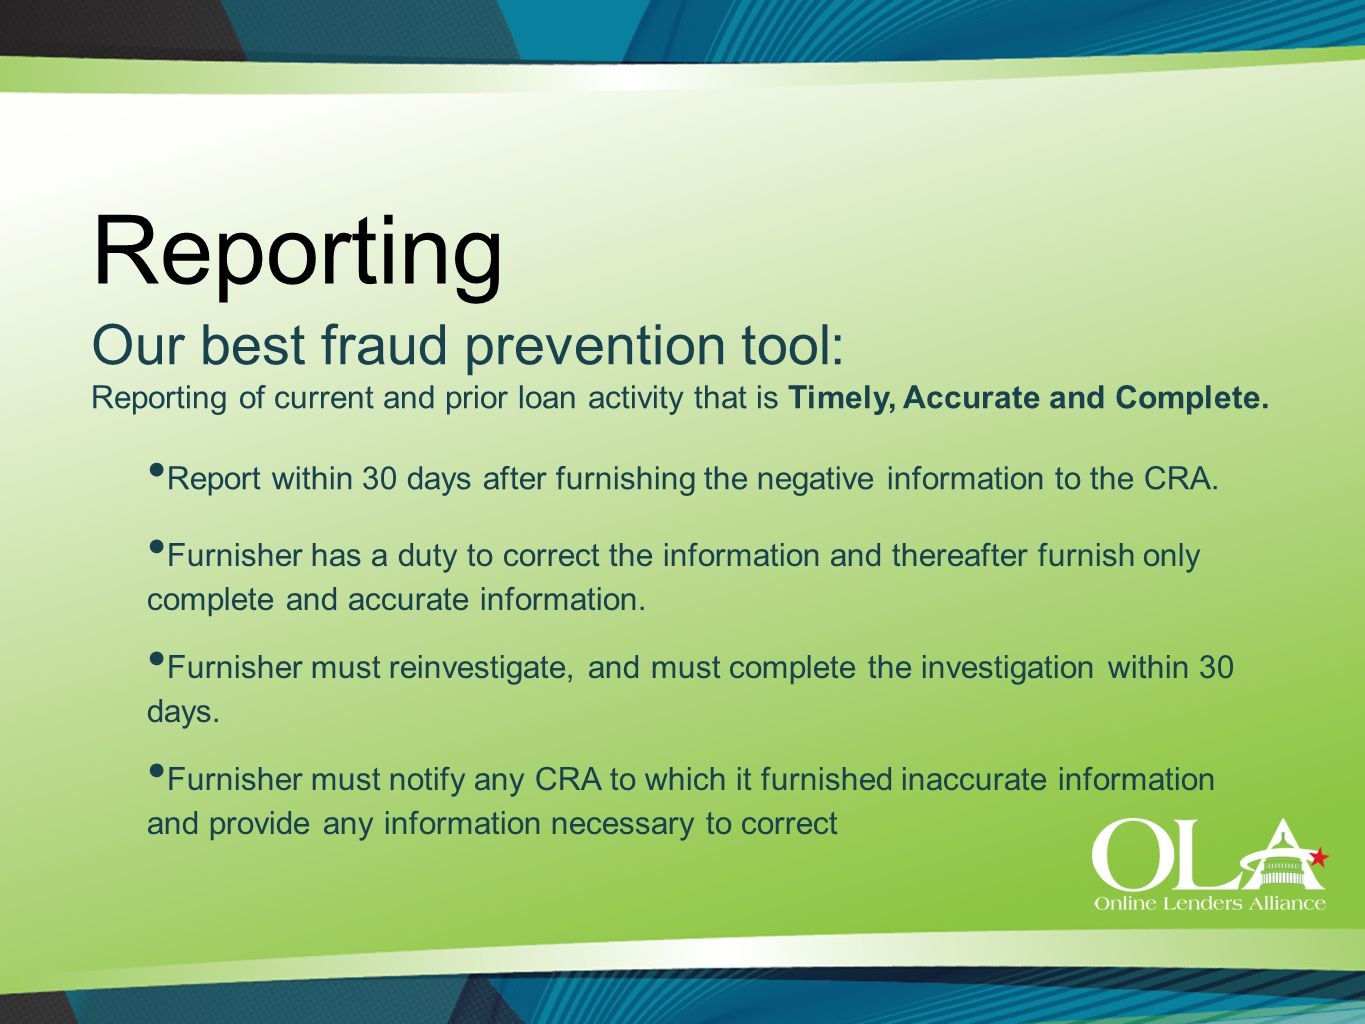 Reporting Our best fraud prevention tool: Reporting of current and prior loan activity that is Timely, Accurate and Complete.